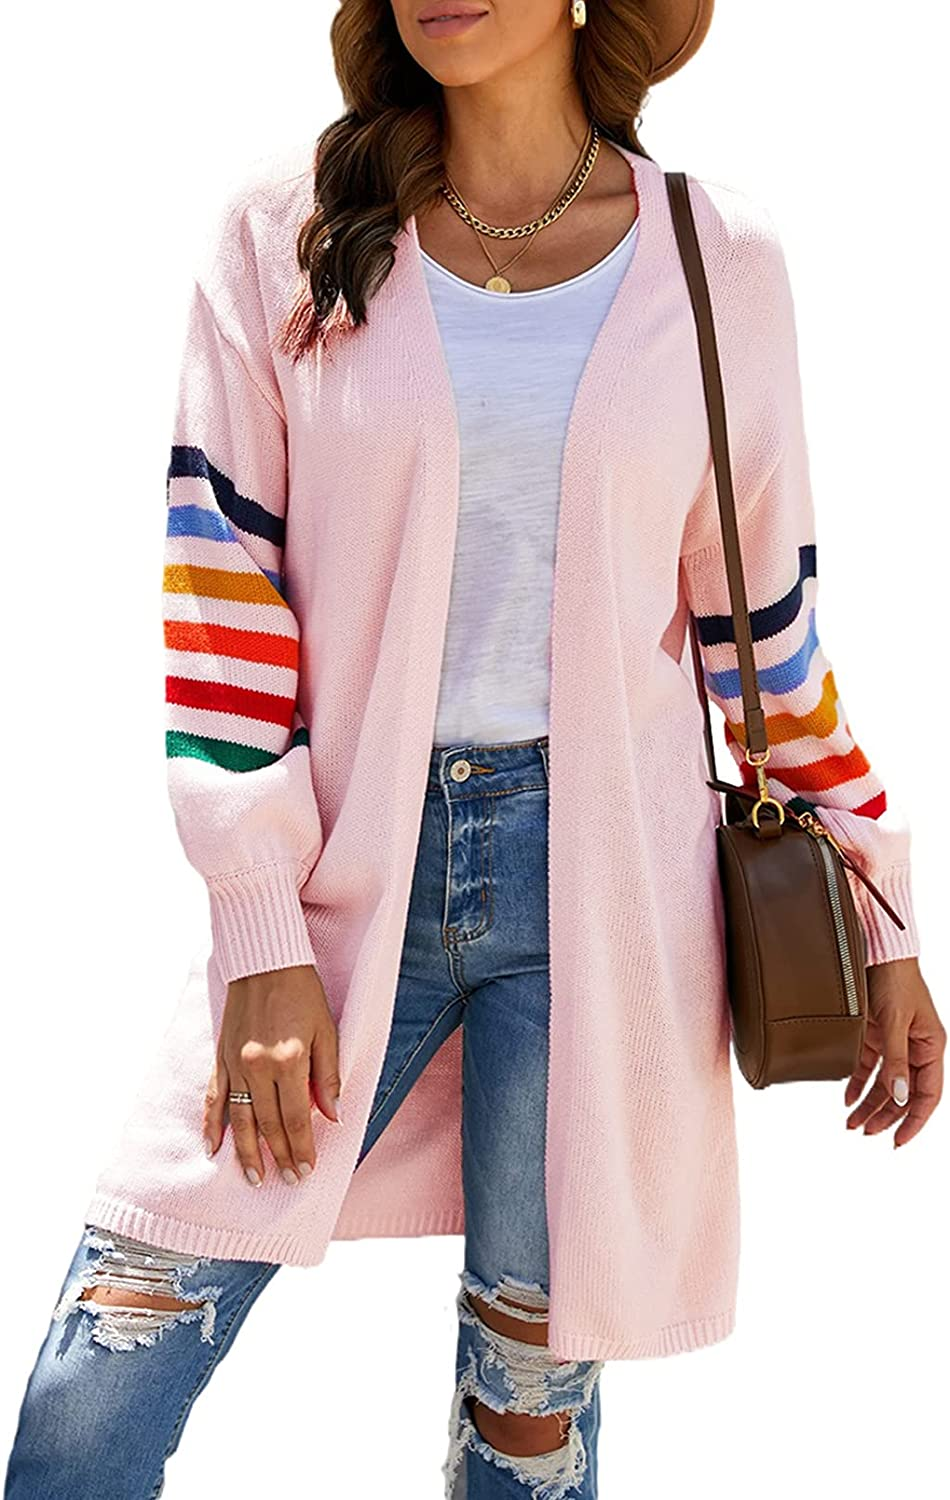 Actloe Womens Long Sleeve Open Front Cardigans Striped Color Block Loose Knit Sweaters Outwear Coat